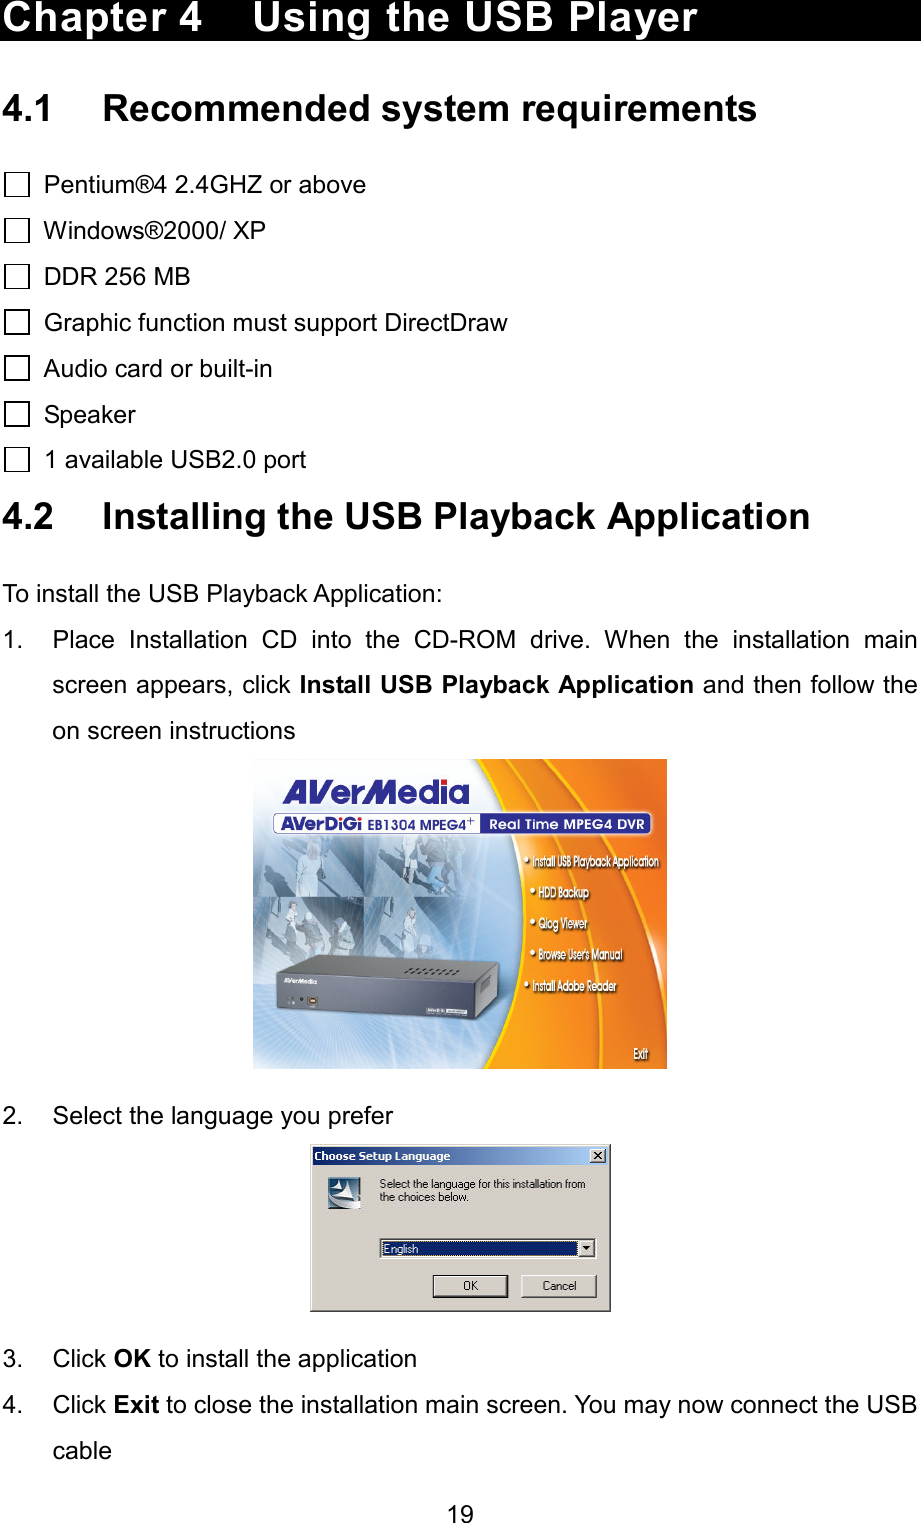 AVERDIGI EB1304 MPEG4 DRIVERS FOR WINDOWS